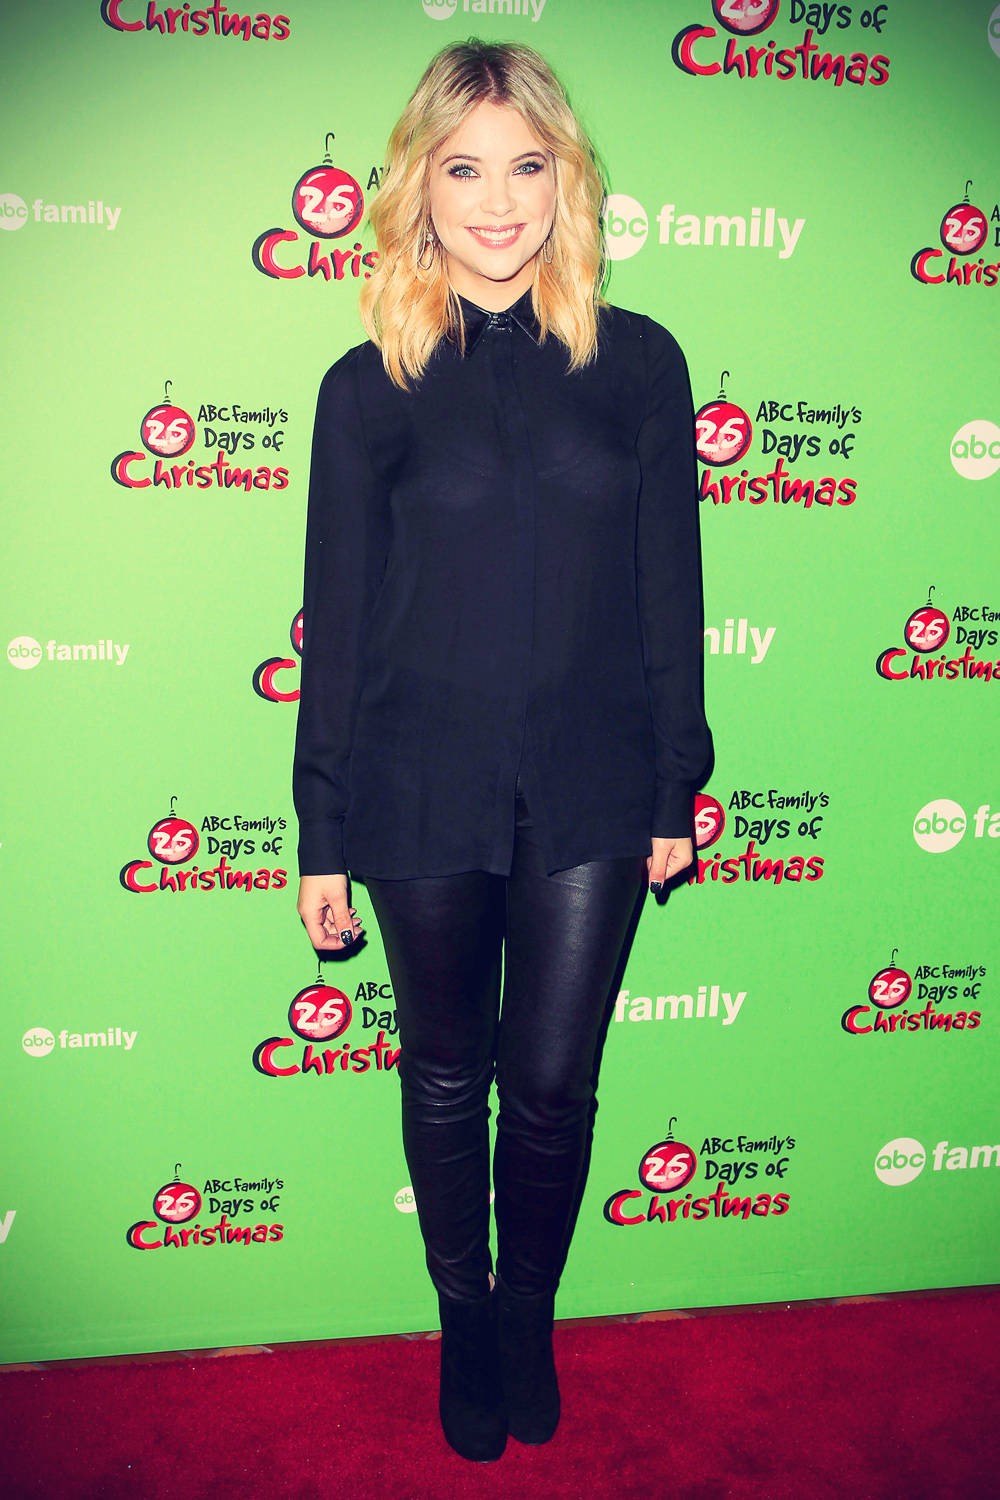 Ashley Benson attends ABC Family's 25 Days Of Christmas